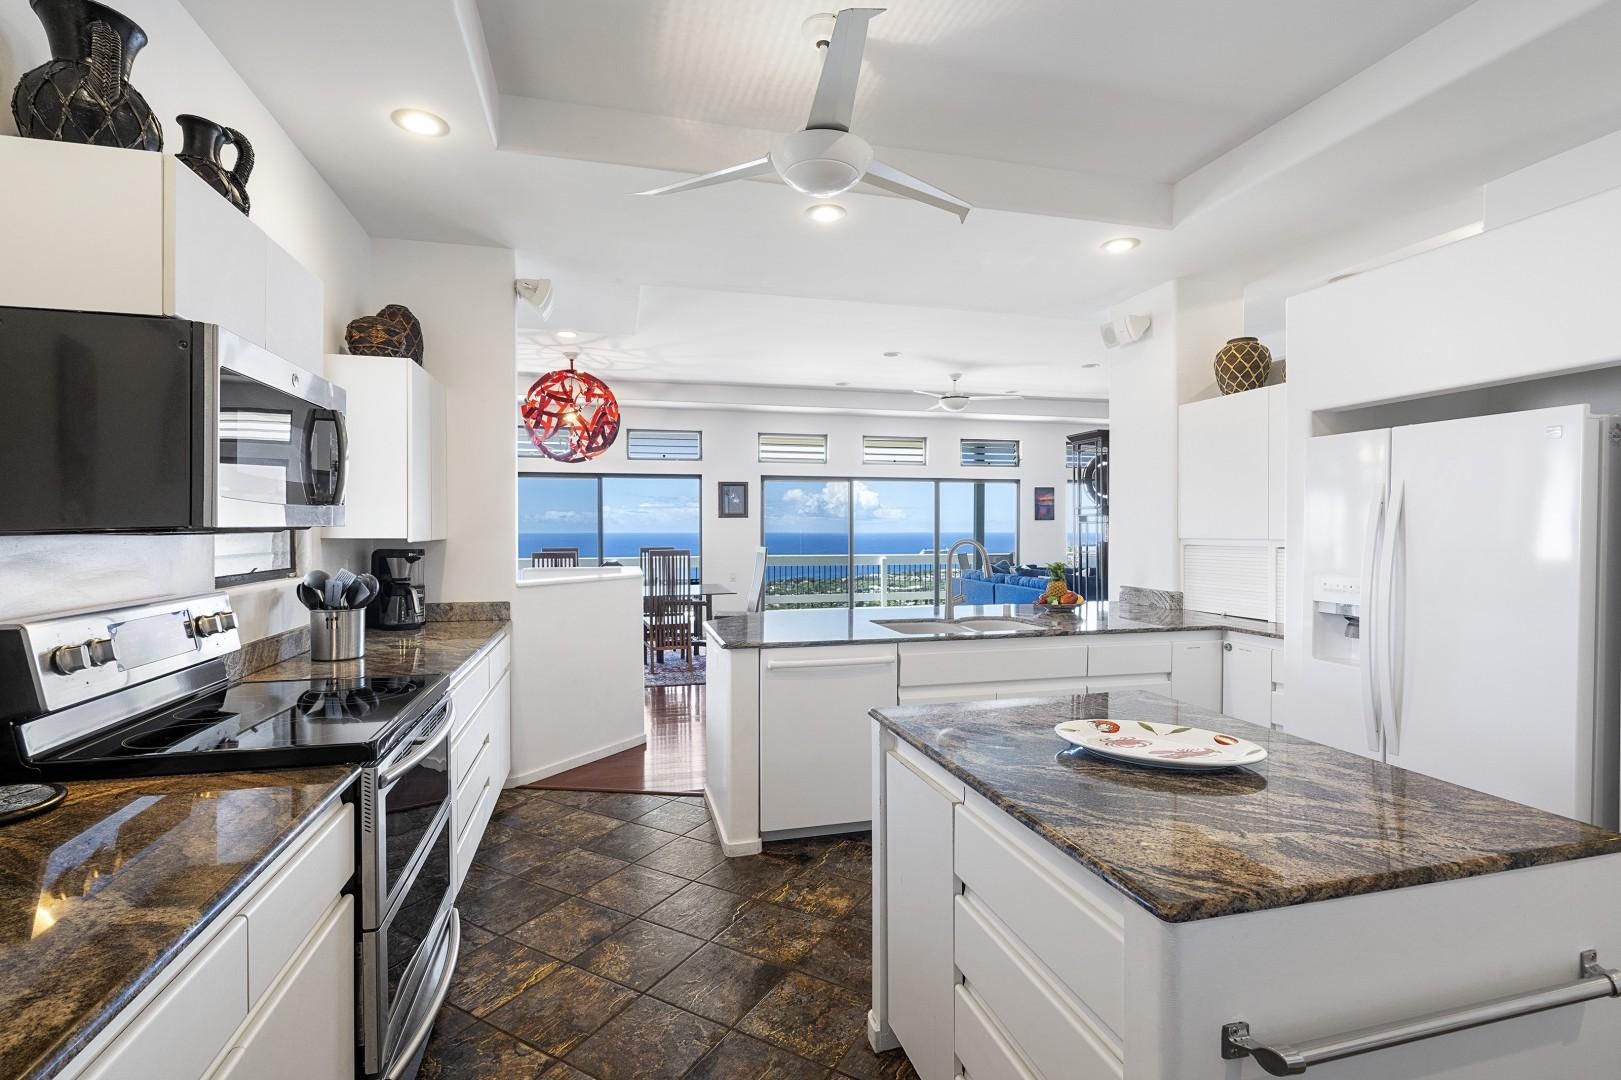 Wash dishes with a view of the Pacific!